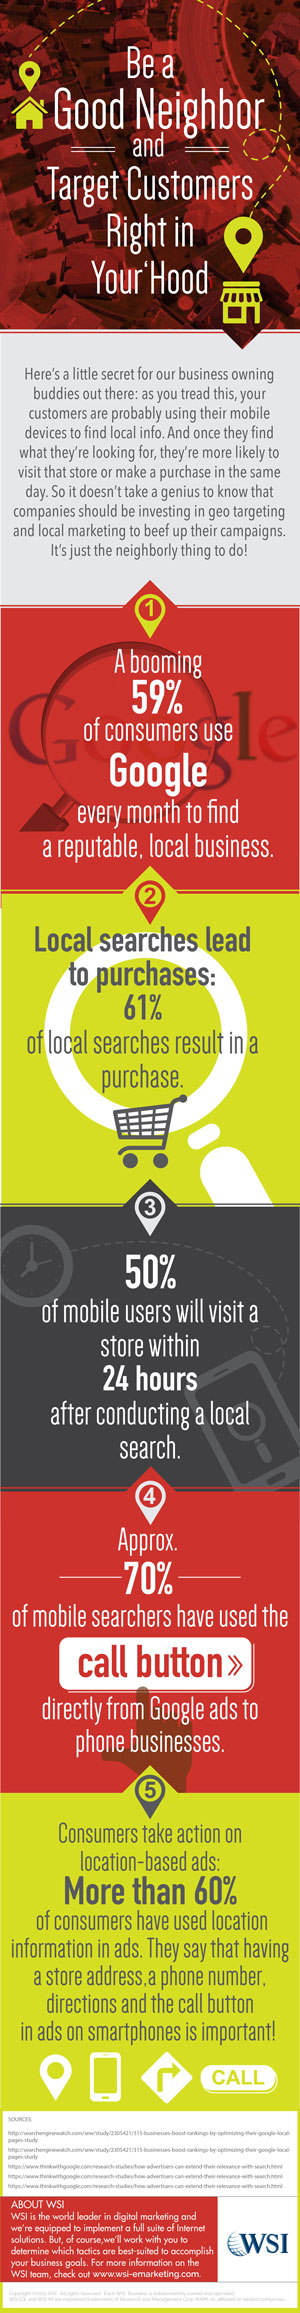 Consumers take action on locationbased ads More than 60